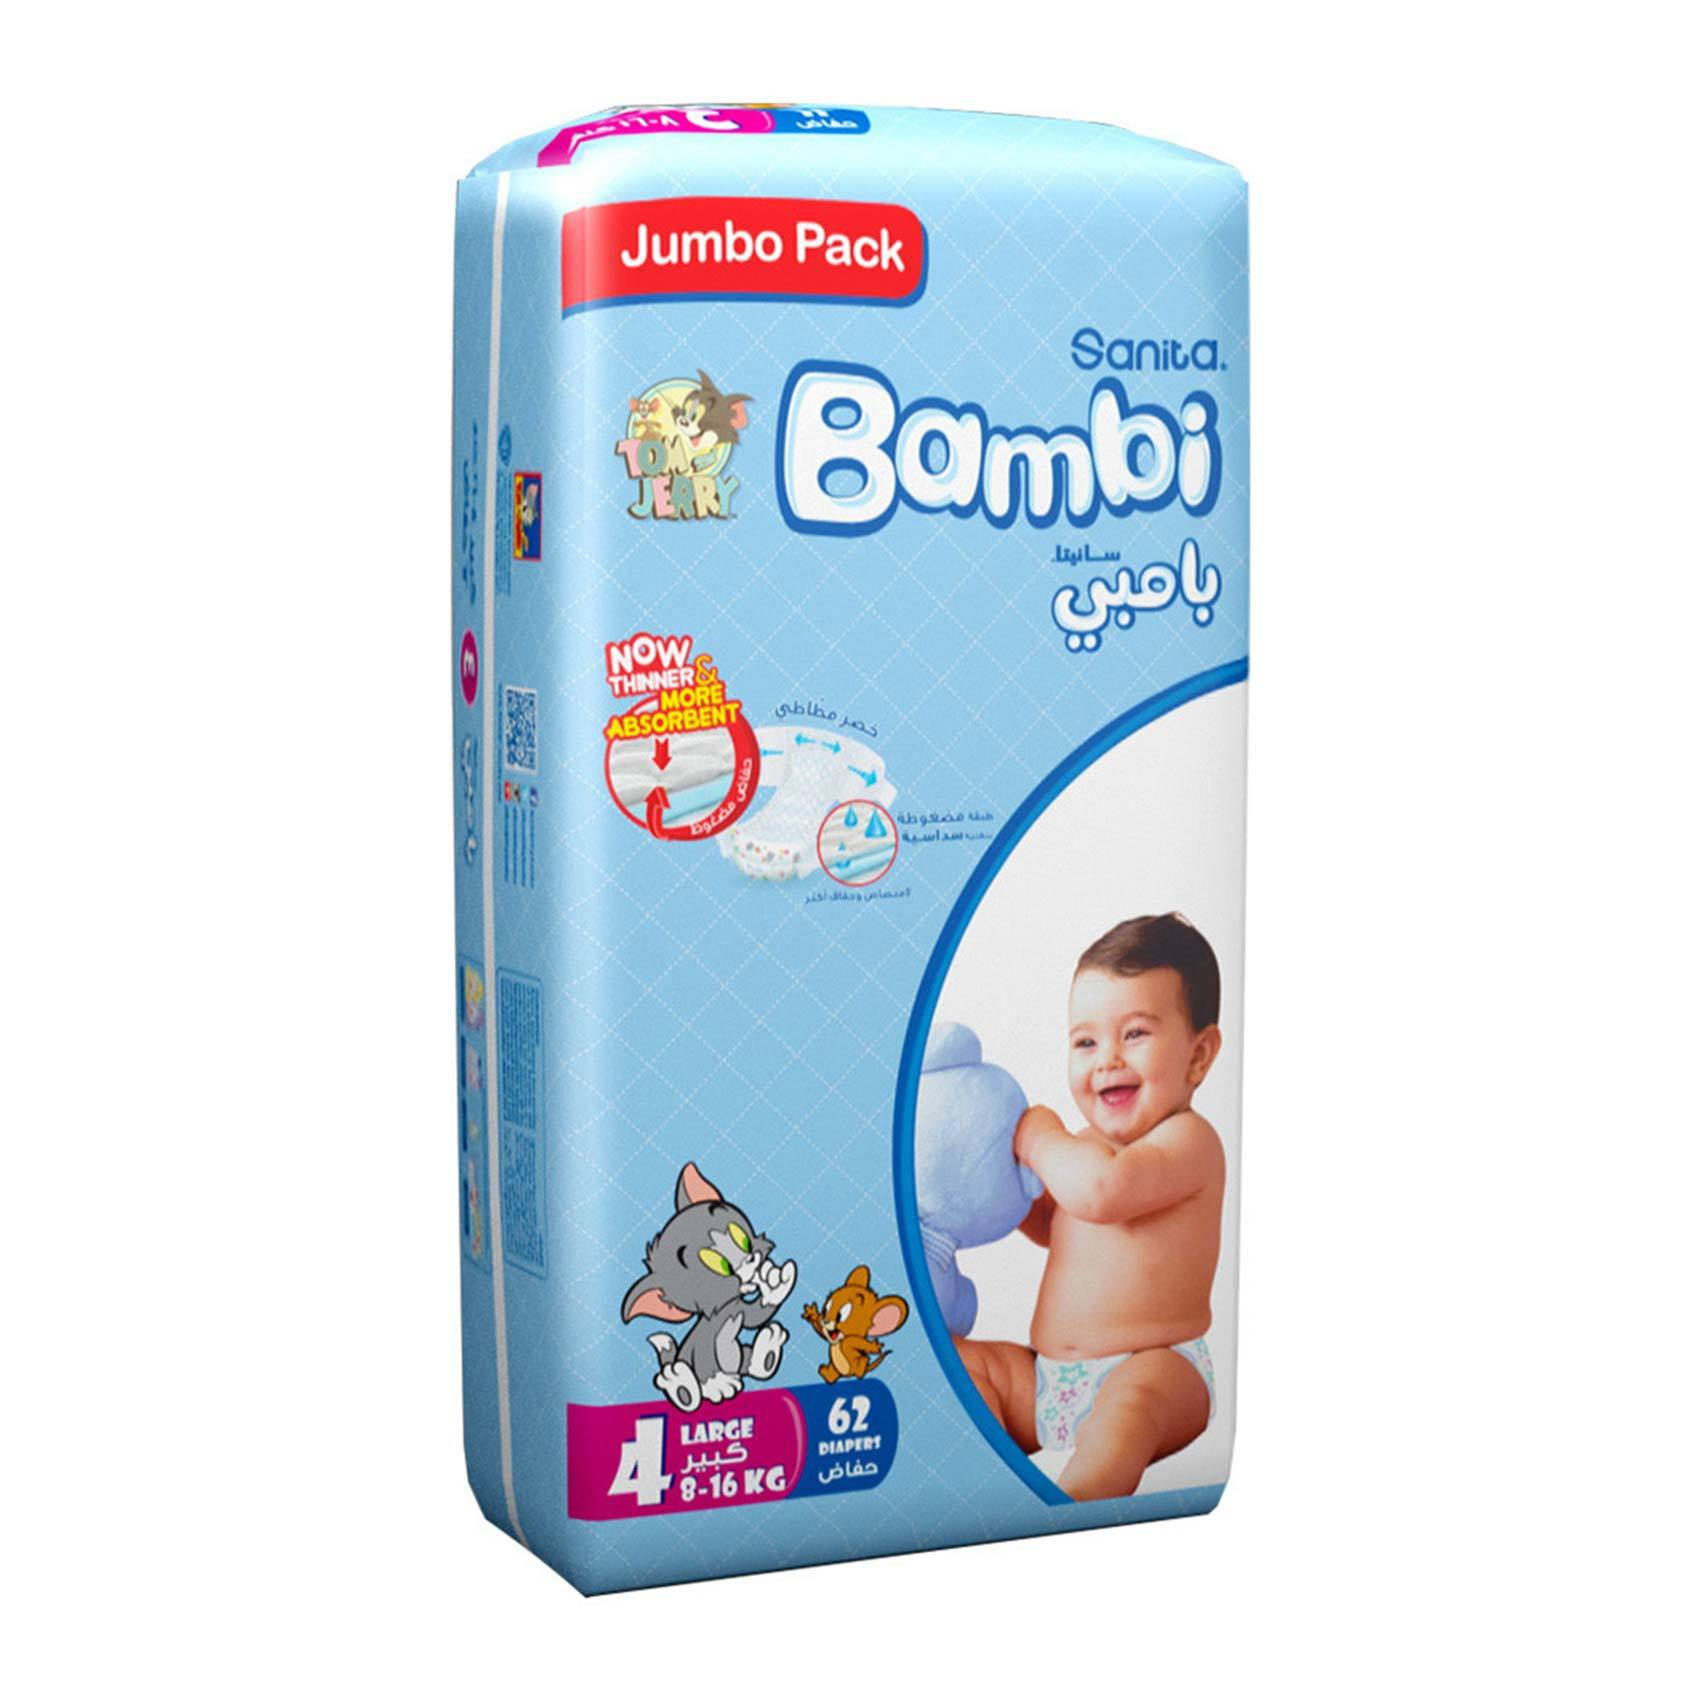 Buy Bambi 4 Jumbo Pack 4 Large 8 16 Kg X 62 Diapers Online Shop Baby Products On Carrefour Saudi Arabia